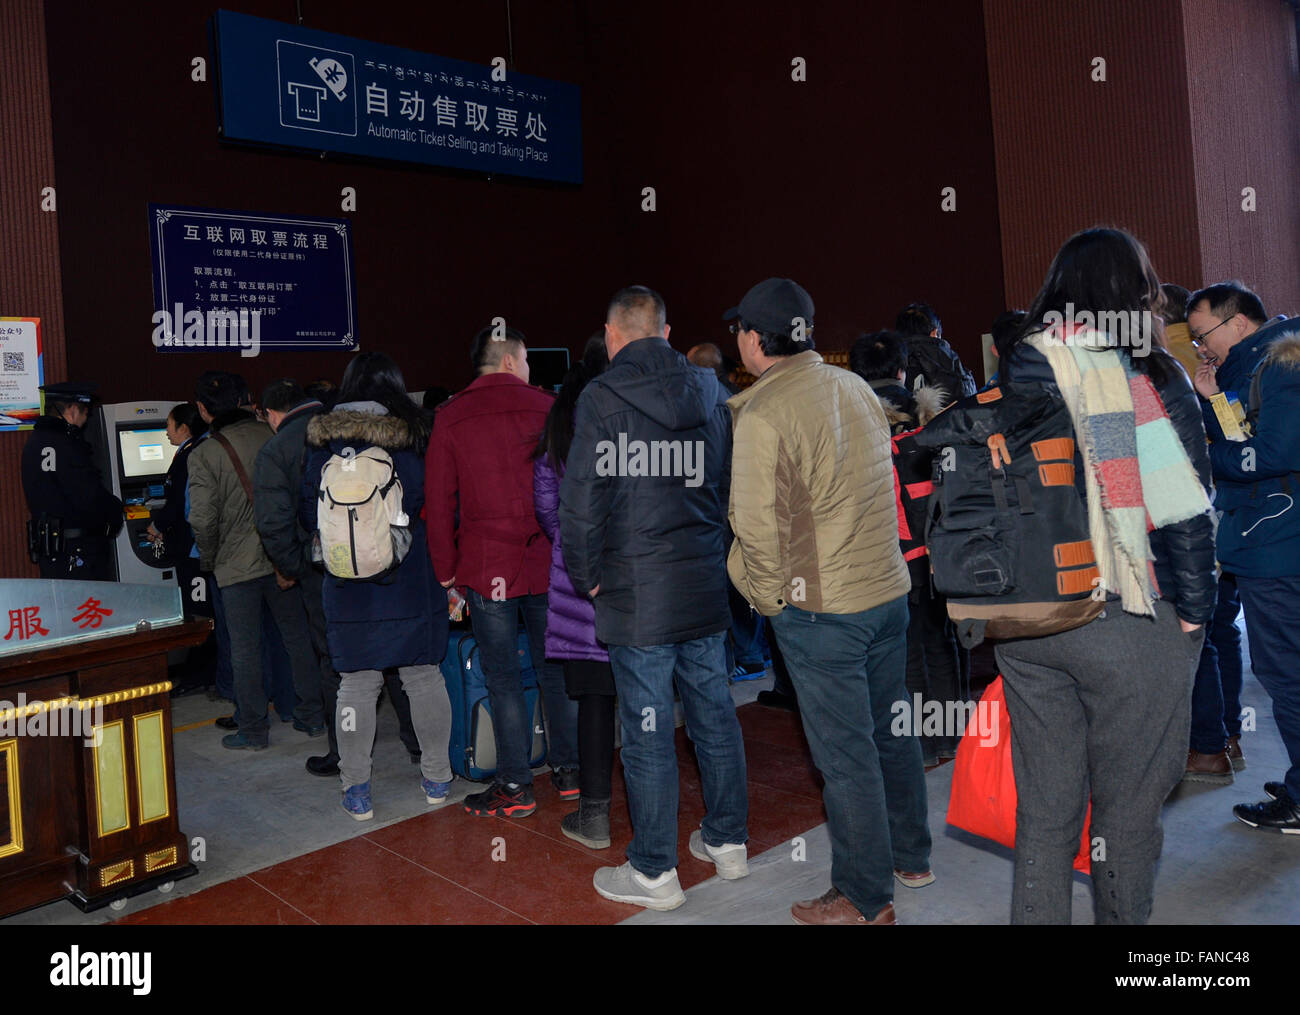 Lhasa, China's Tibet Autonomous Region. 2nd Jan, 2016. Passengers take the booked tickets in a train station - Stock Image